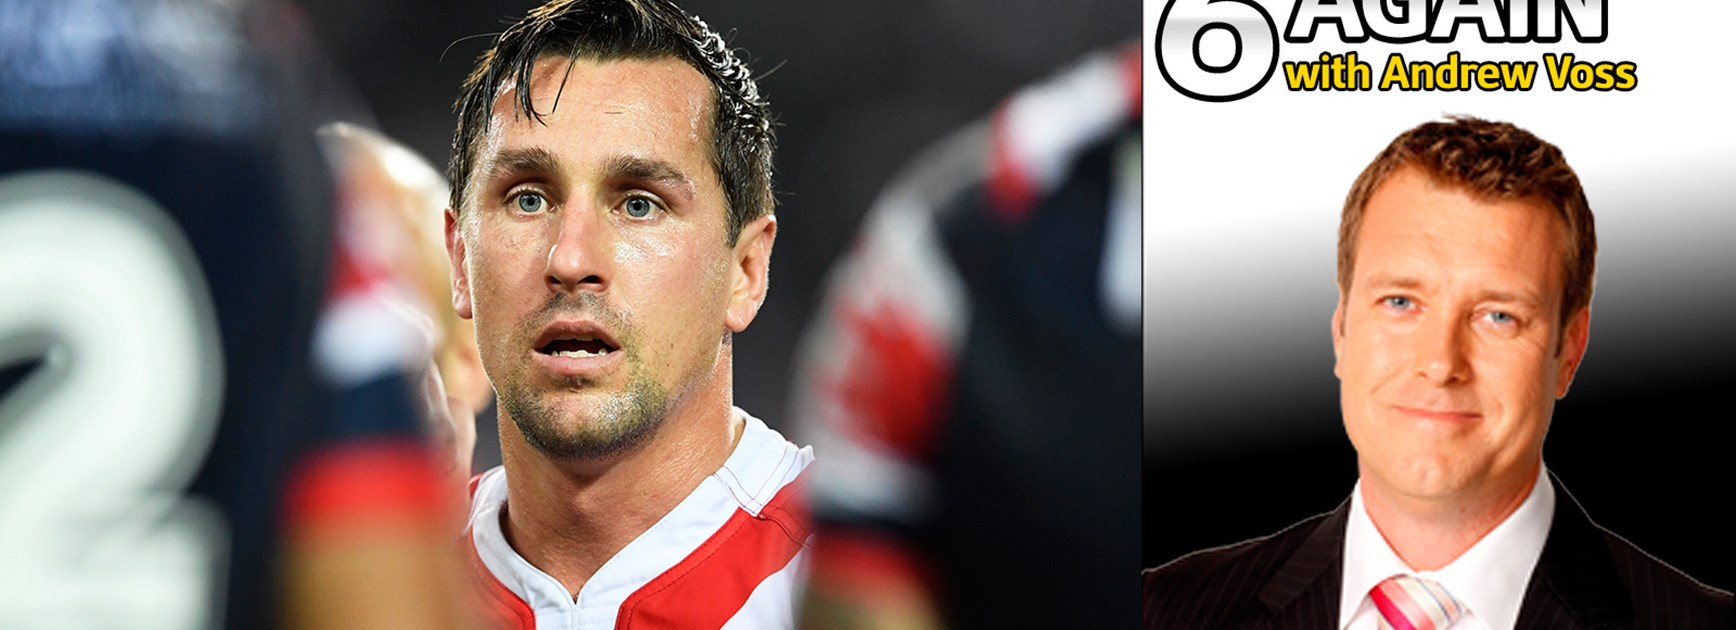 Andrew Voss says Sydney Roosters halfback Mitchell Pearce could be collateral damage in the business of football.